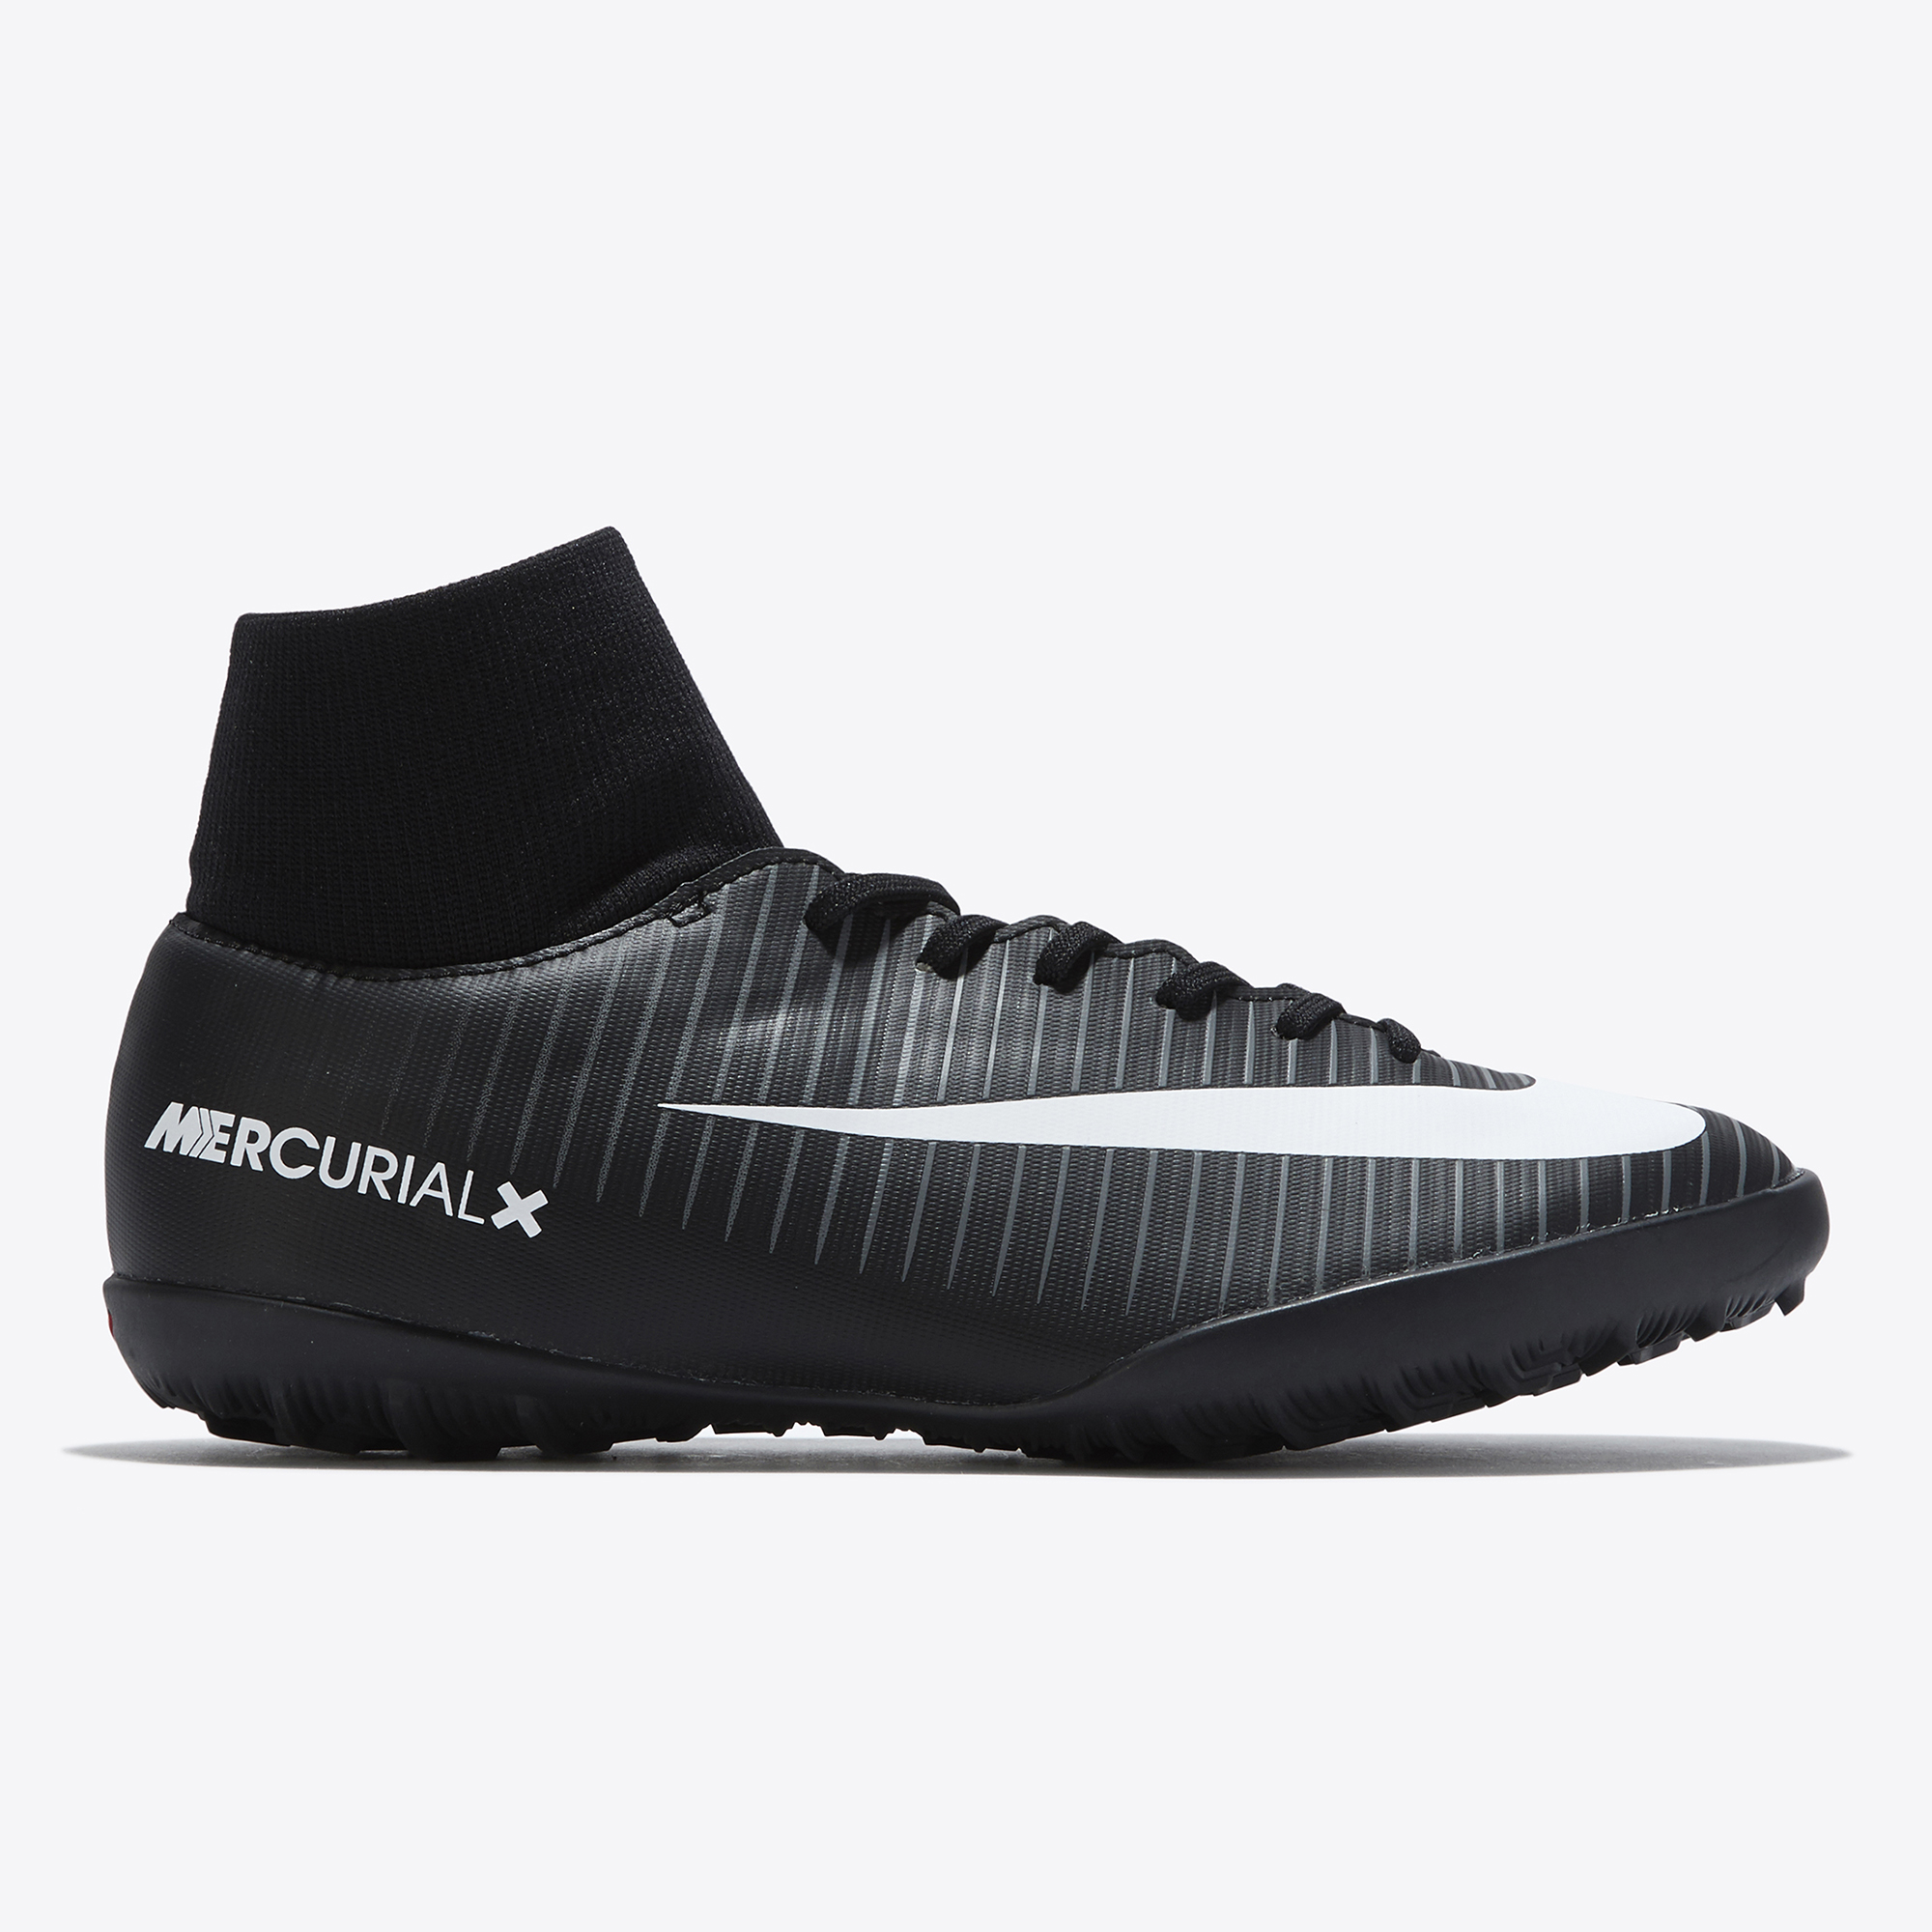 Nike Mercurial Victory VI Dynamic Fit Astroturf Trainers - Black/White